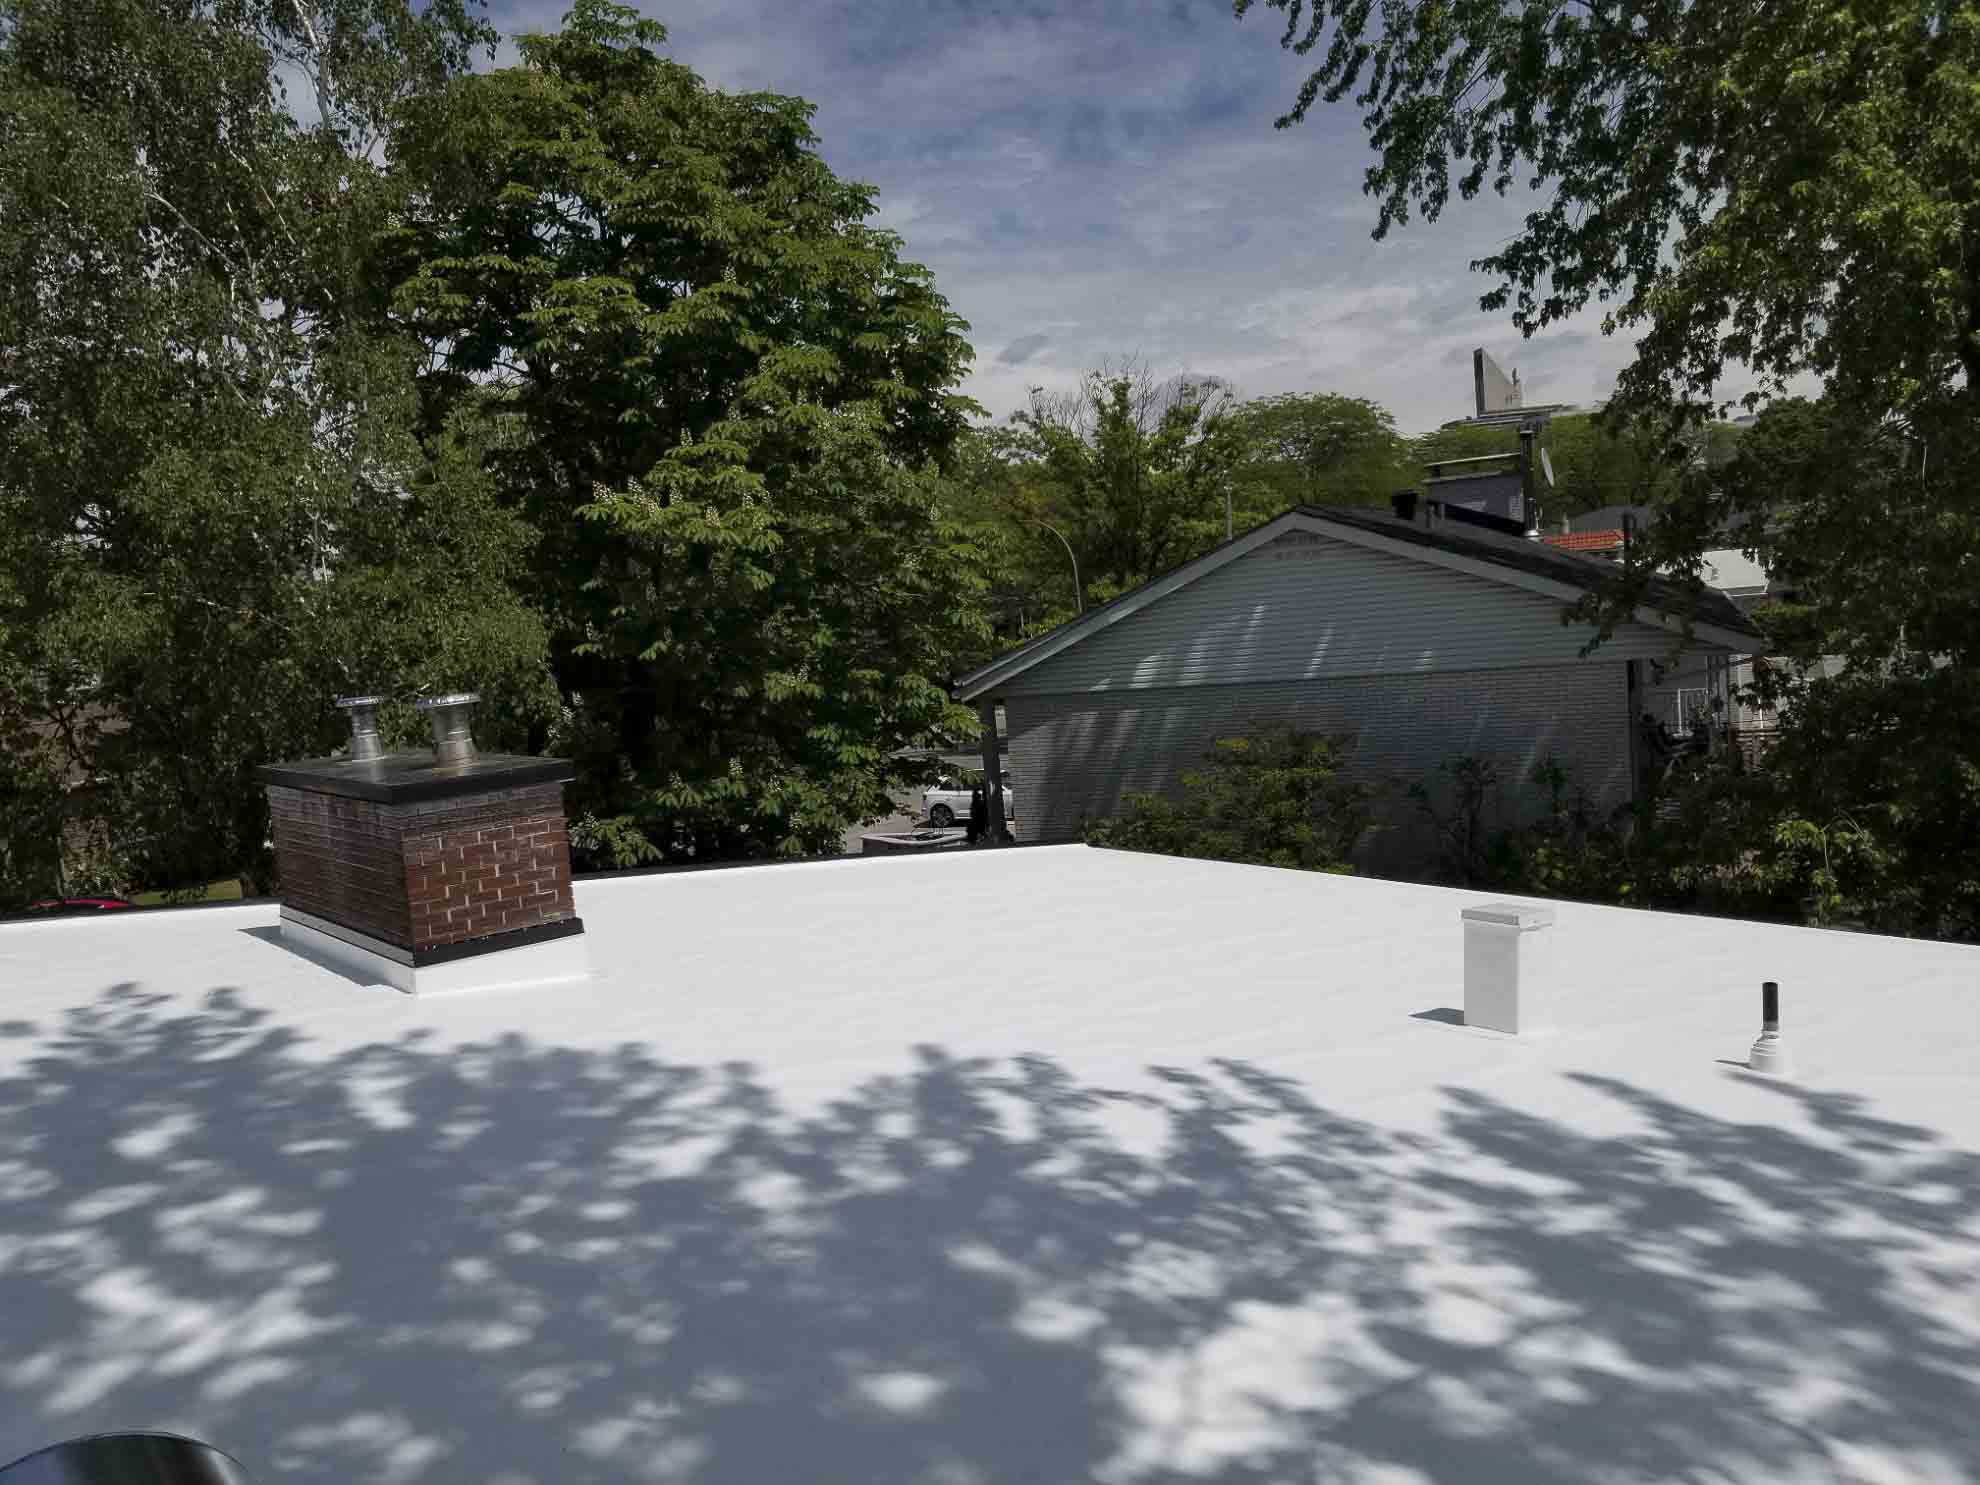 view of the brand new roof after the roofers finished their work